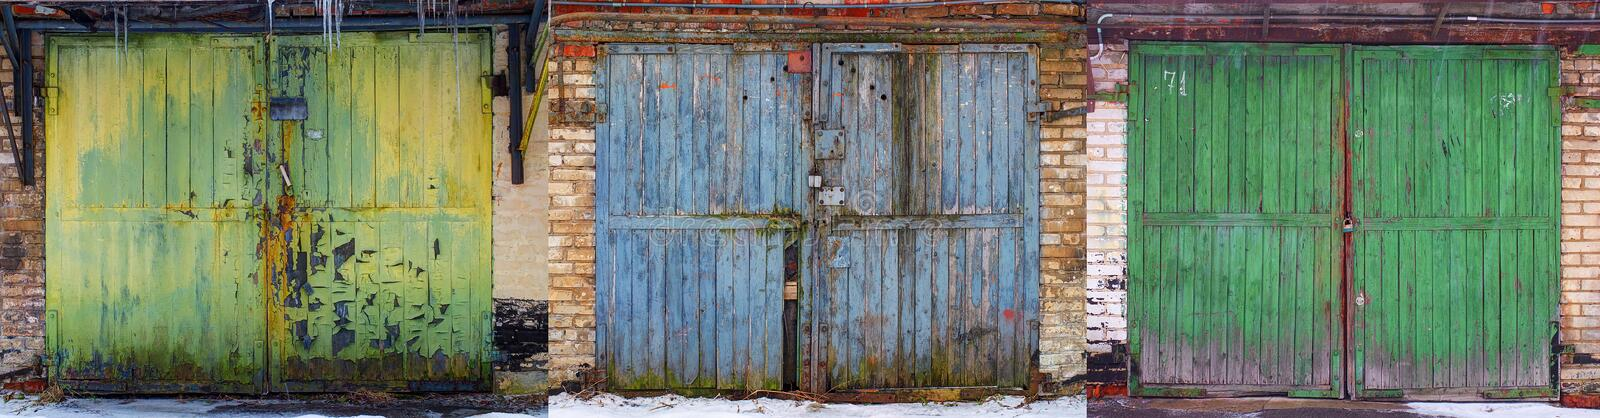 Set of obsolete worn out wear old fashion car garage wooden gates background abstract pattern texture. Antique automobile old wood stock photography